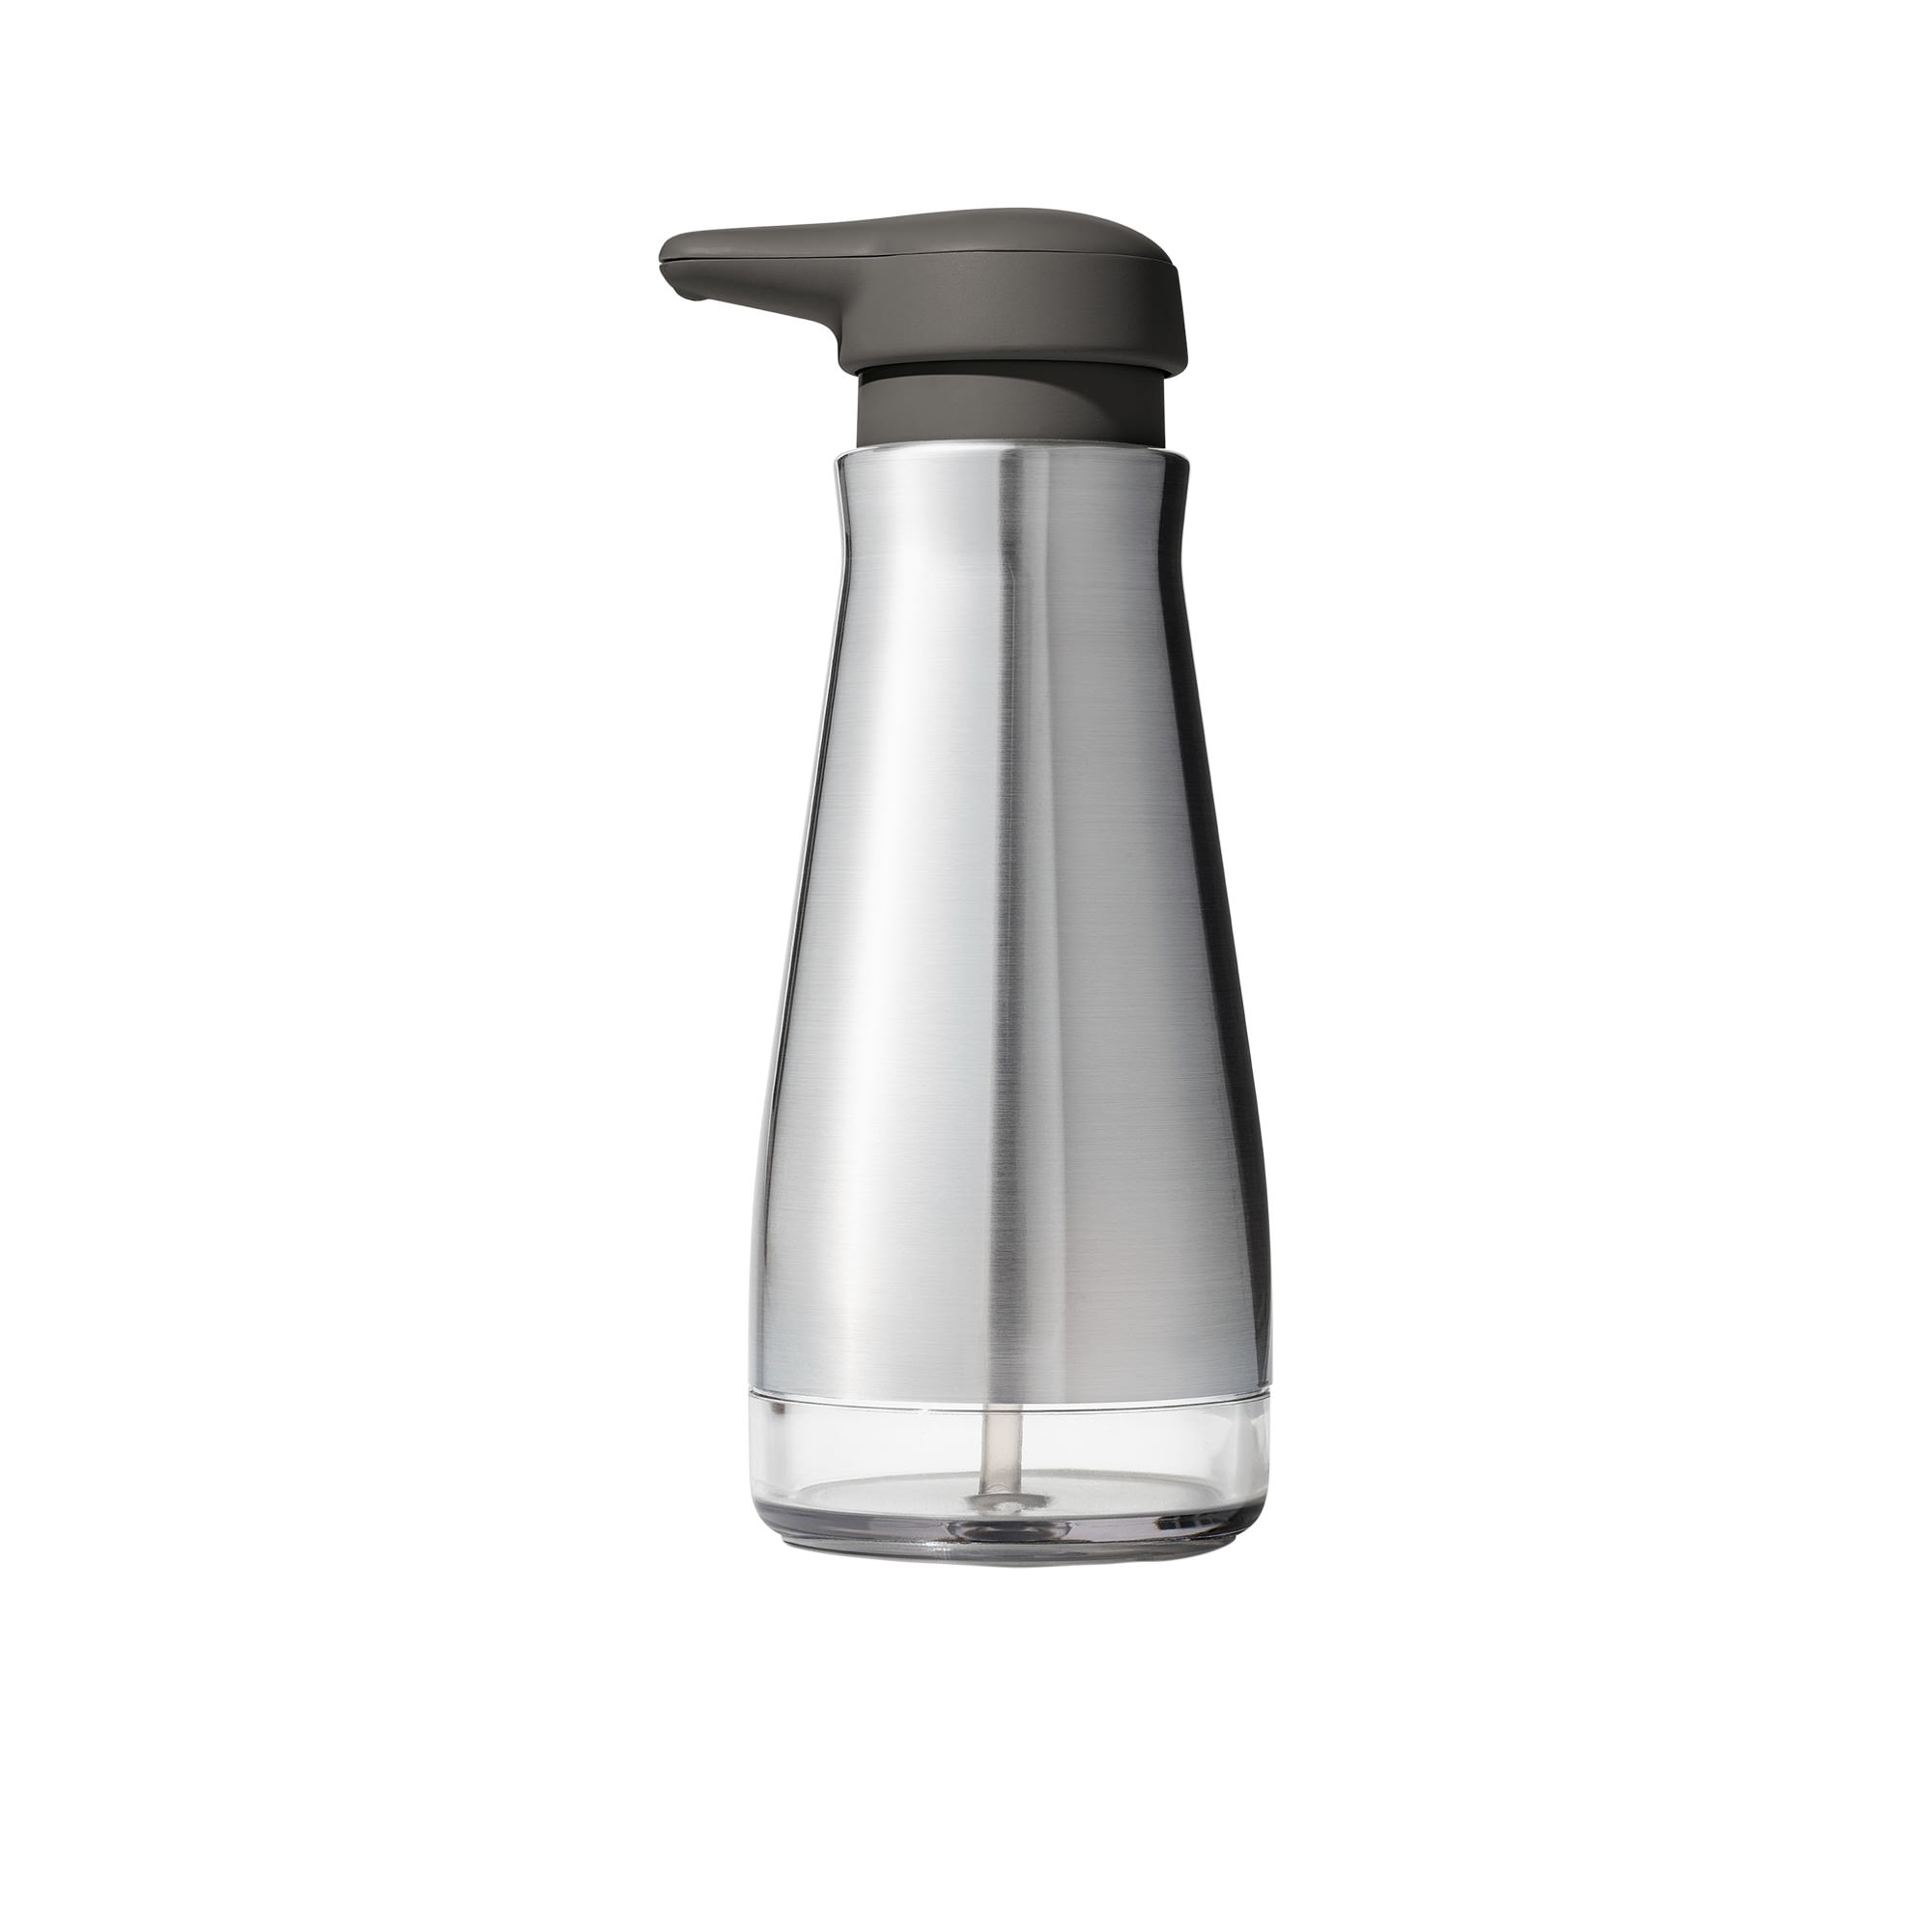 Oxo Good Grips Soap Dispenser